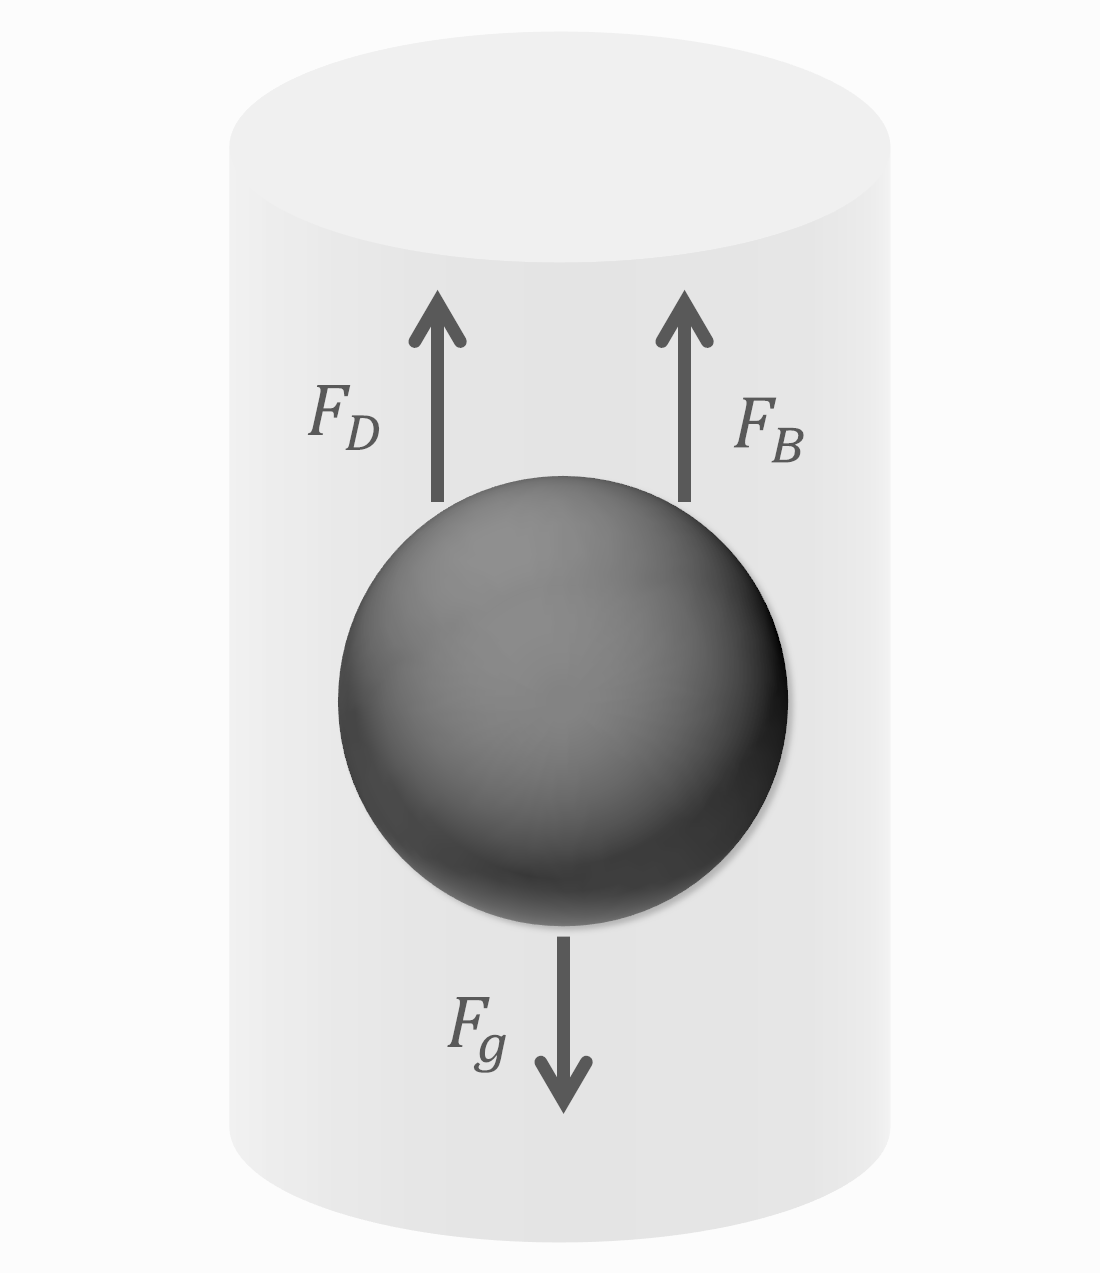 Force Balance on Falling Ping Pong Ball in a Tube -